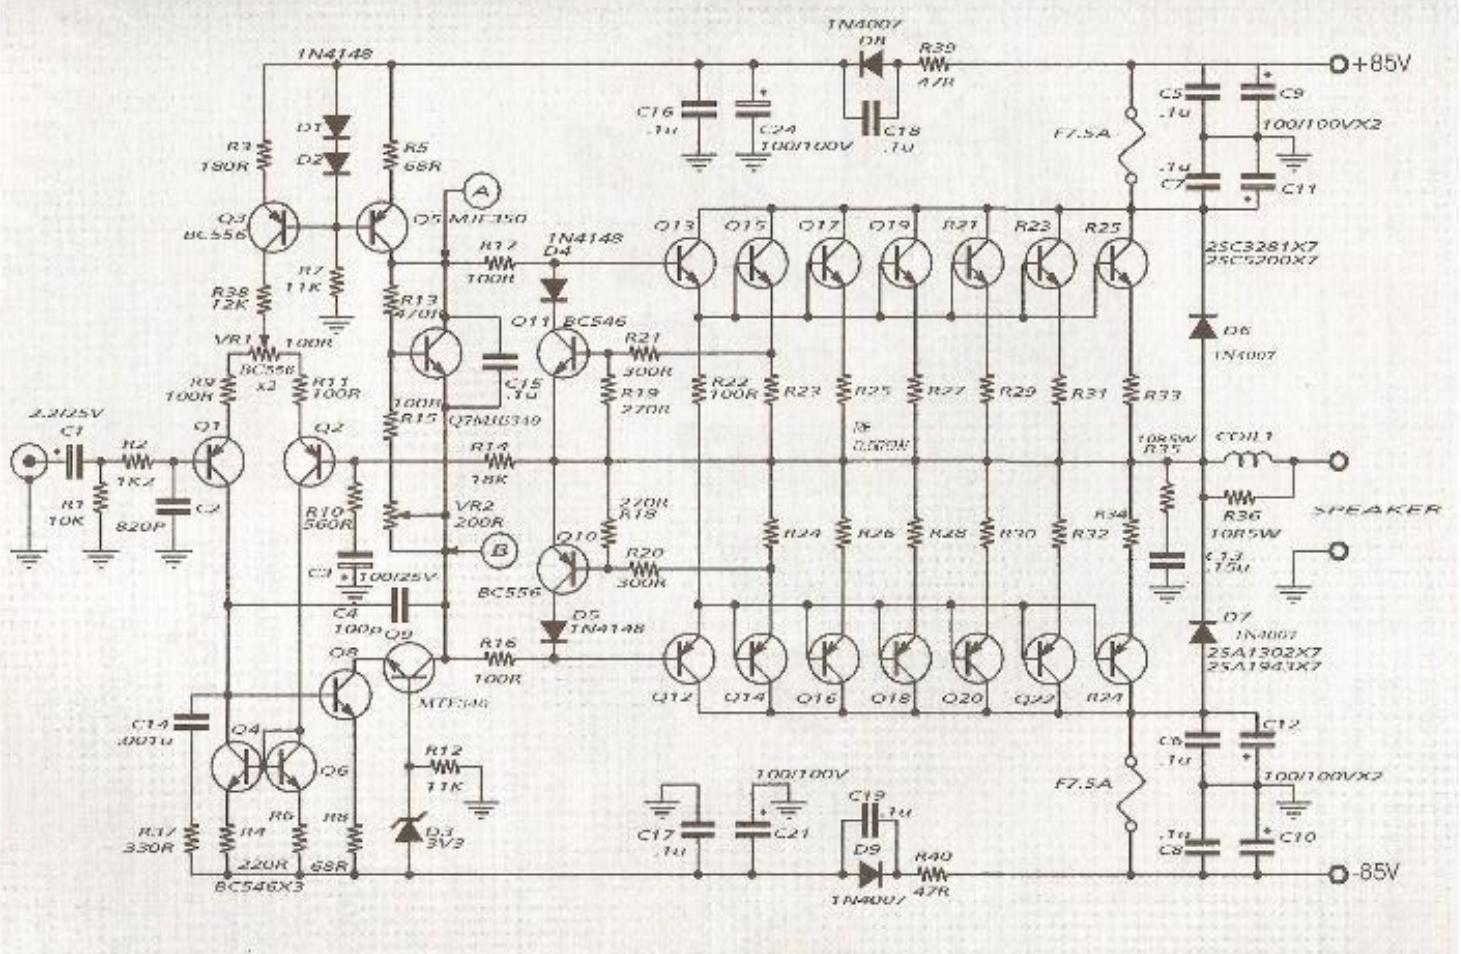 2sc 5200 Mosfet Audio Amplifire Circuit Diagram Images Amplifier On Schematic Above Is Describe The 600 Watt Power